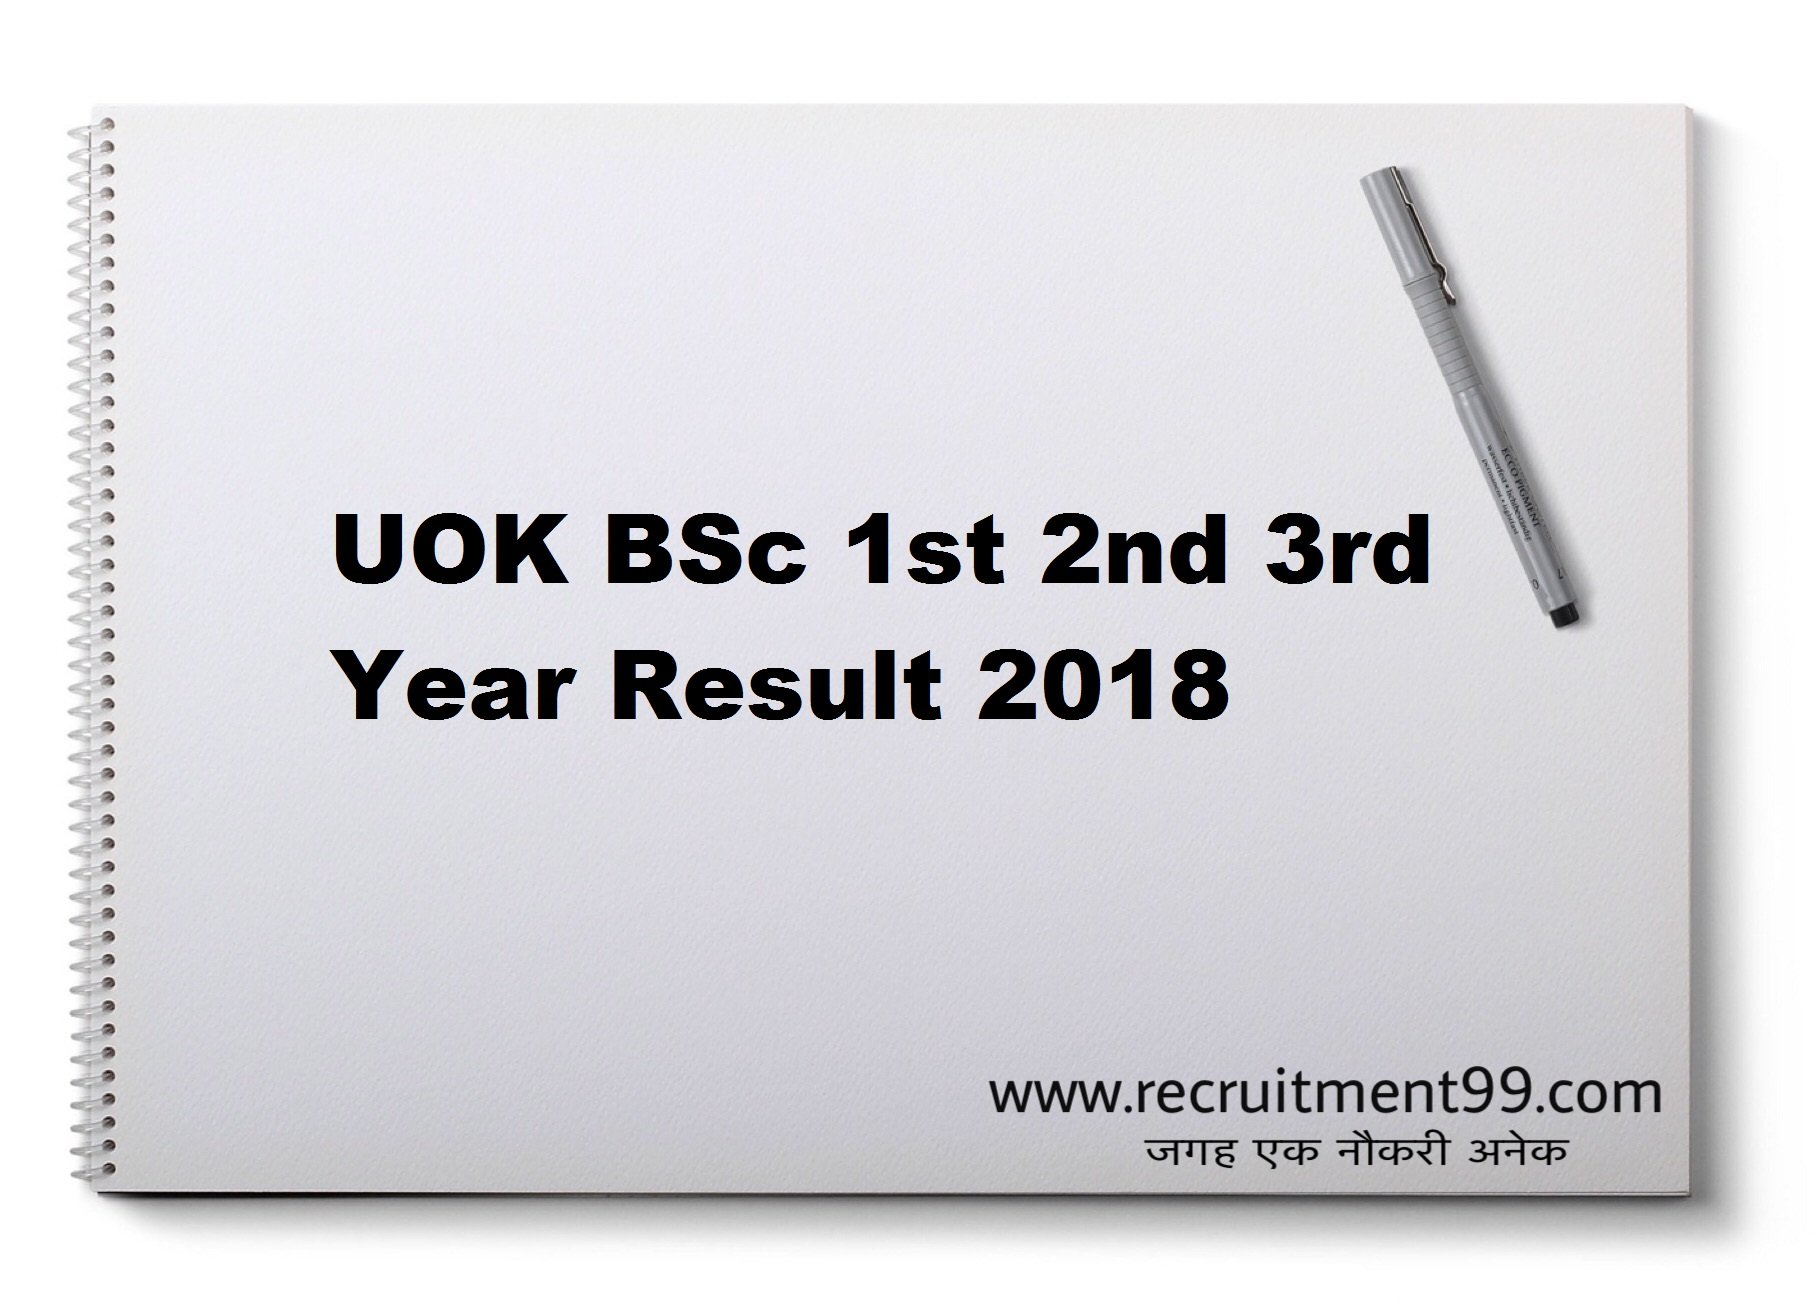 UOK BSc 1st 2nd 3rd Year Result 2018